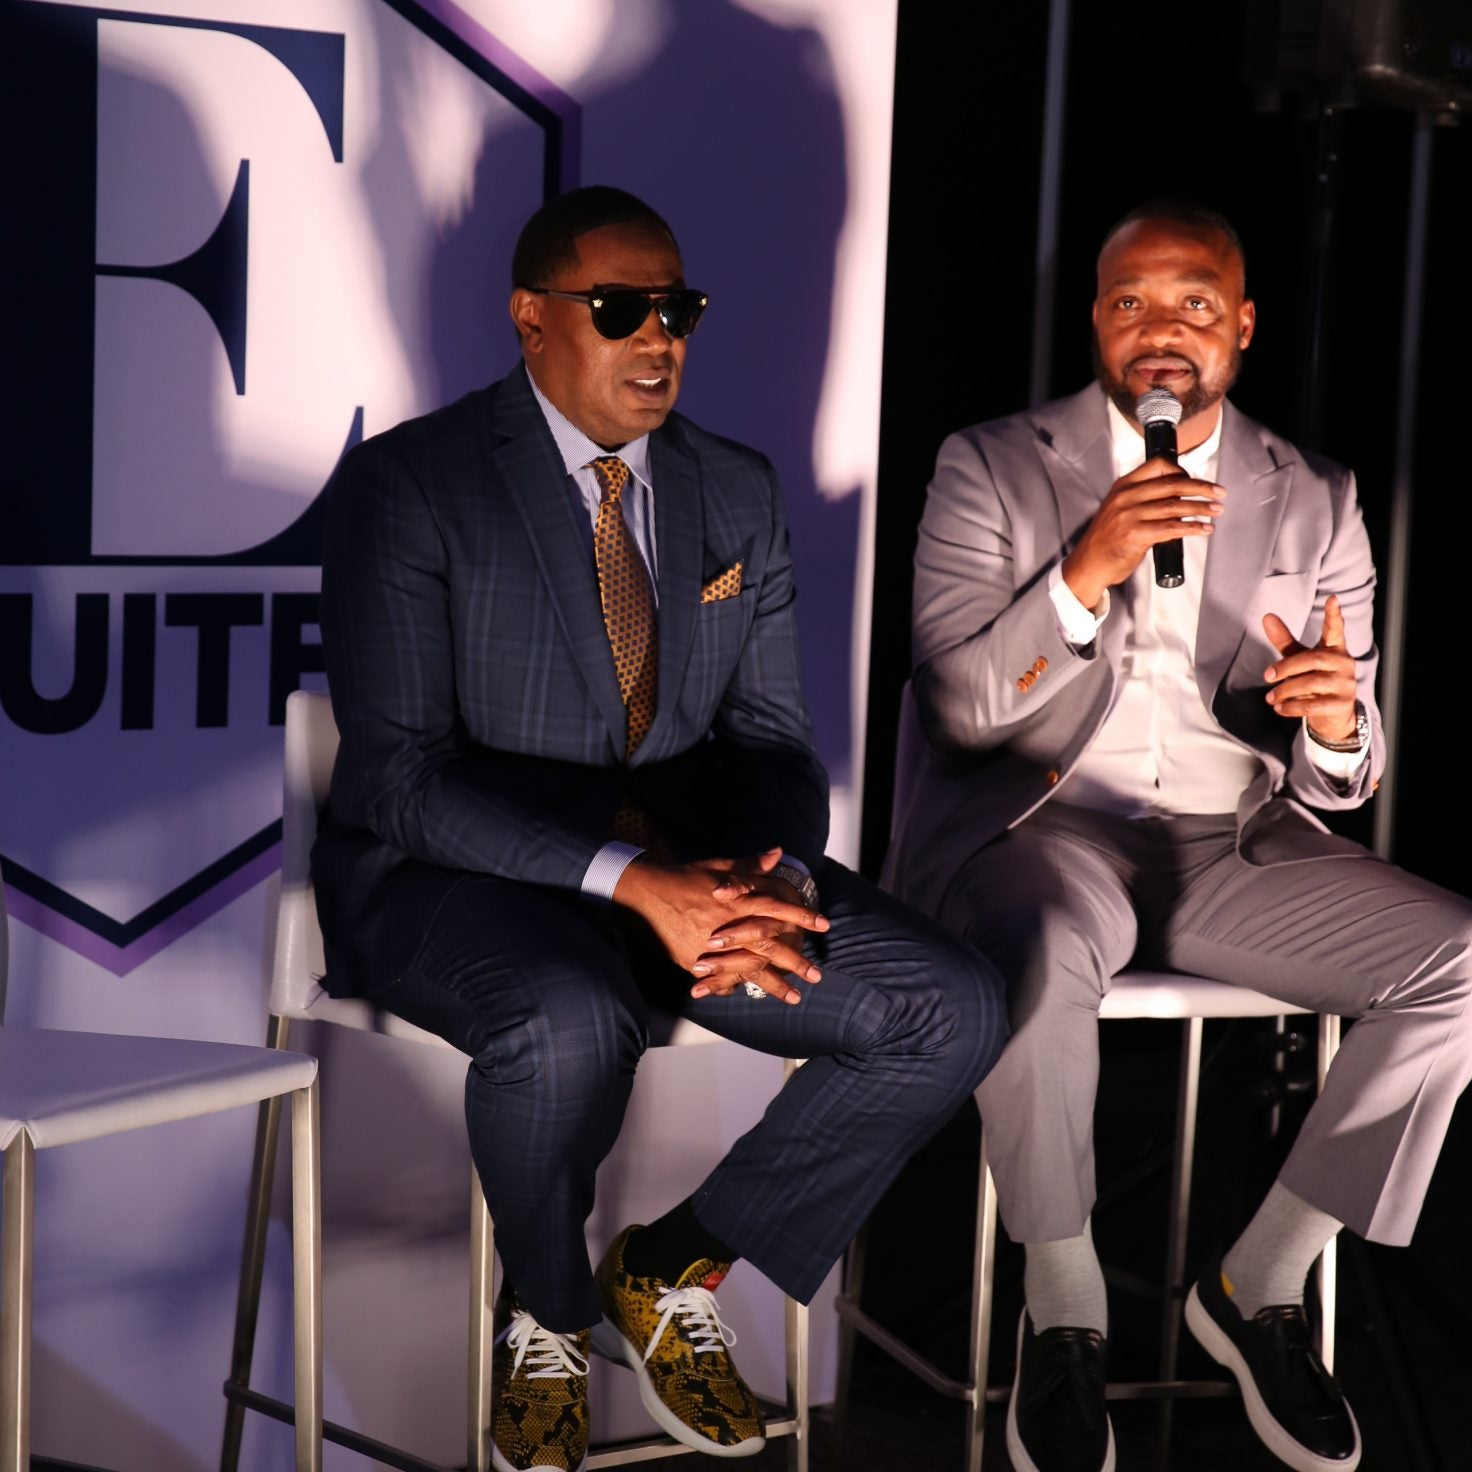 Master P And Rap Snacks Co-Founder James Lindsay Share Six Tips For A Successful Business Partnership From